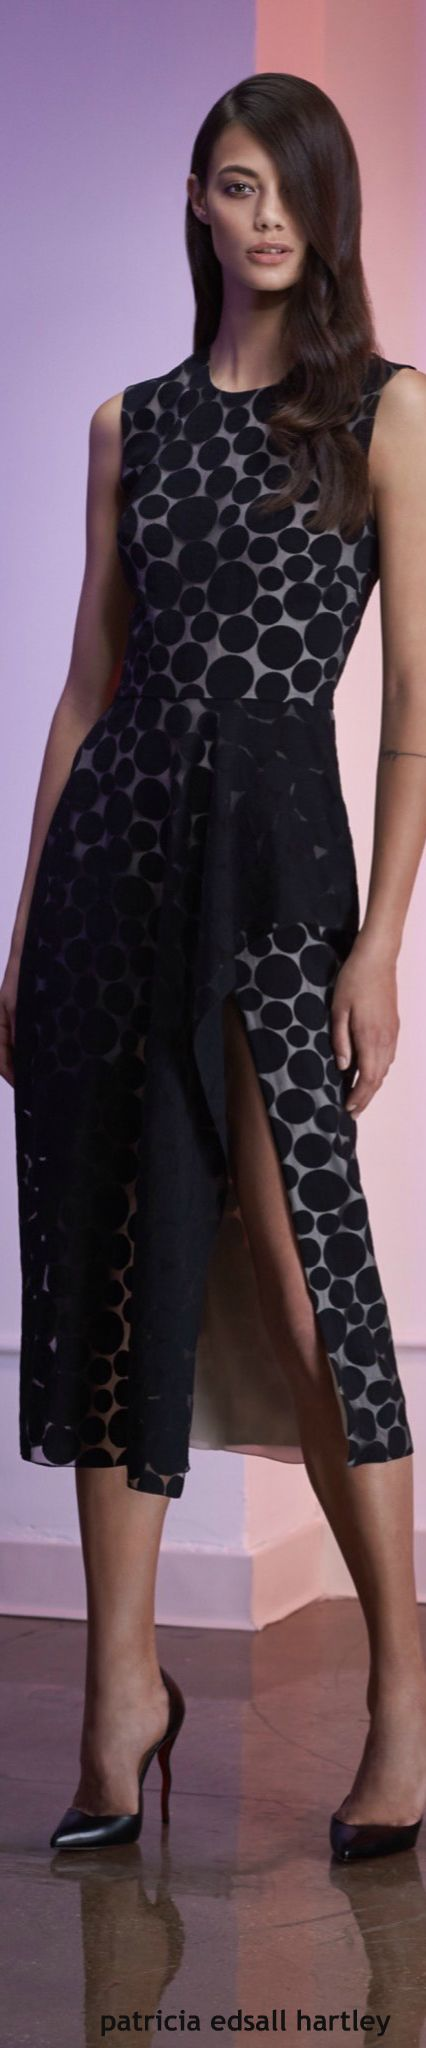 7 Best Ideas Images On Pinterest Fashion Details Show And Minimal Evia Pleated Dress Navy Check L Draped Organic Dot By Cushnie Et Ochs For Preorder Moda Operandi